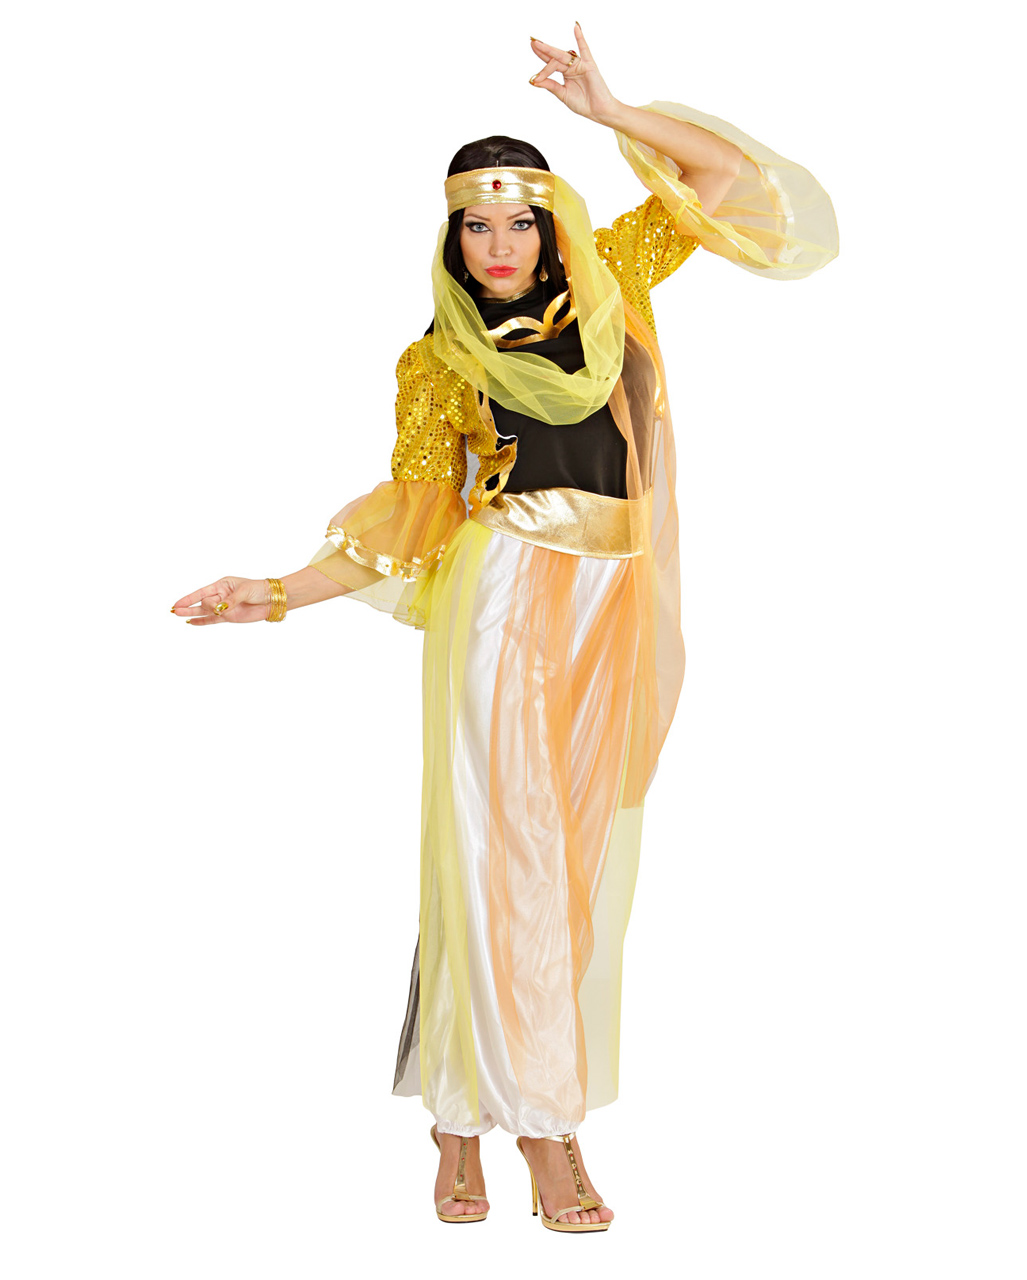 Harem dancer costume m oriental belly dance costume horror shop harem dancer costume m solutioingenieria Images